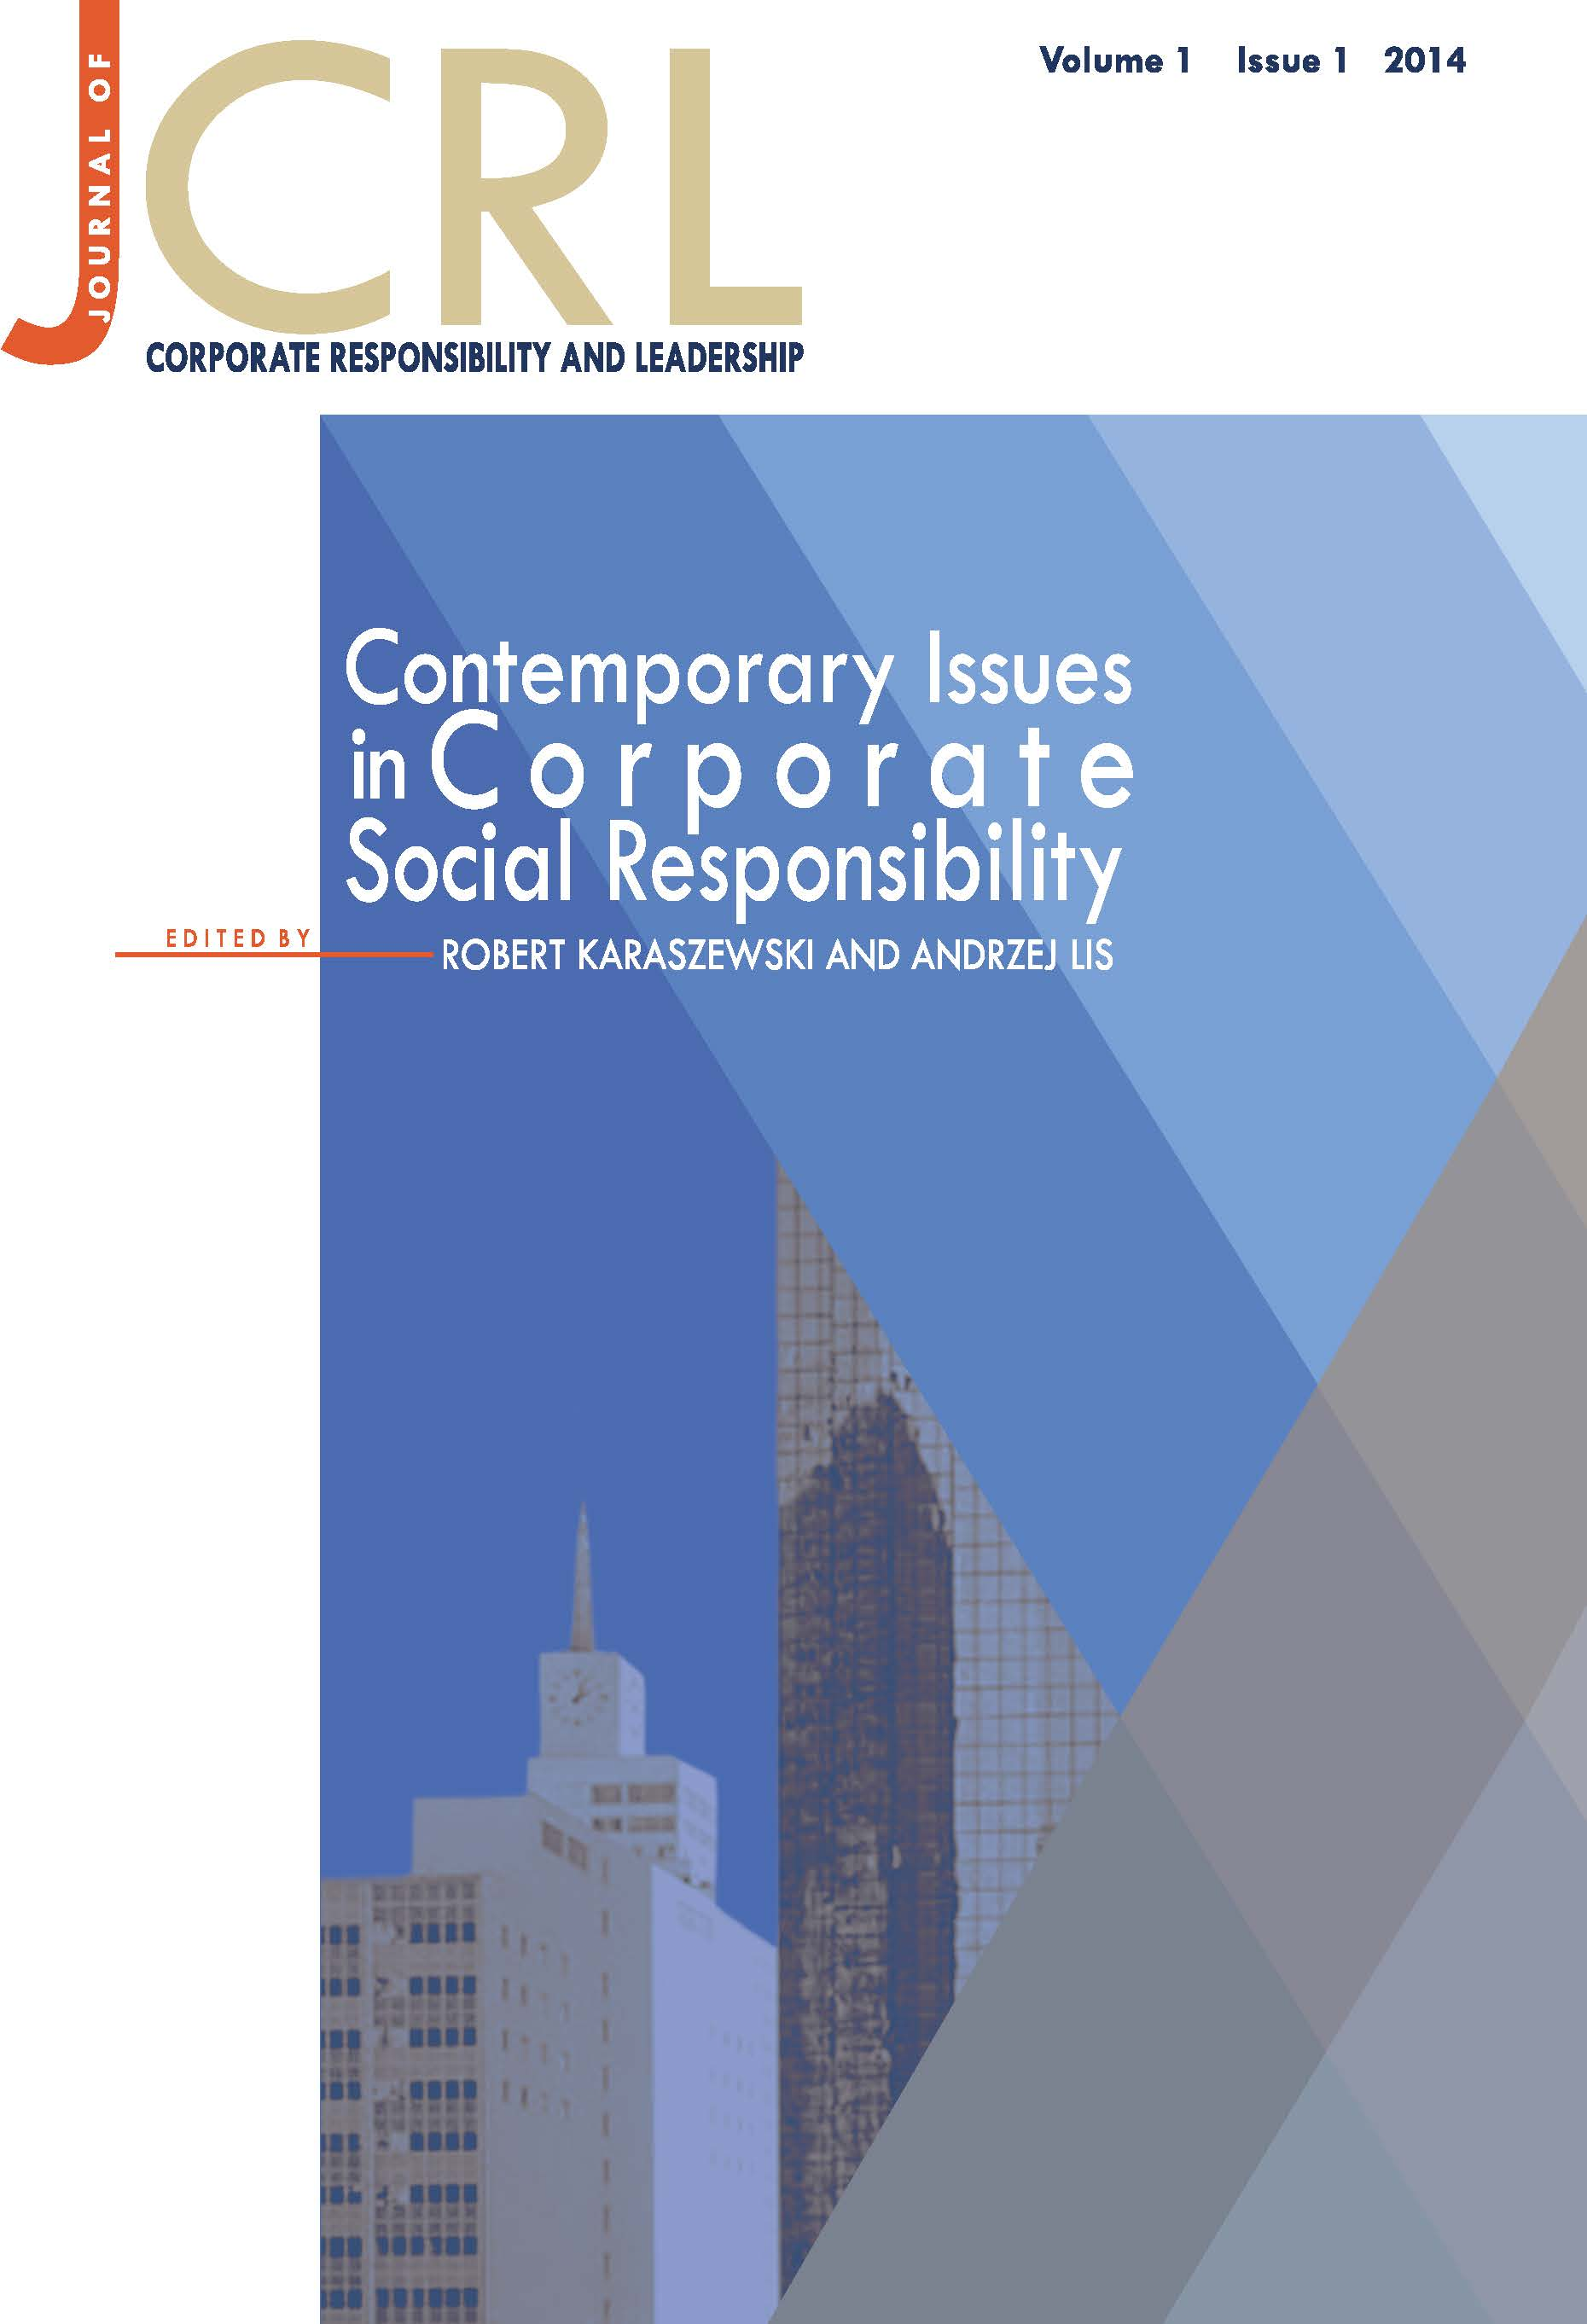 View Vol. 1 No. 1 (2014): Contemporary Issues in Corporate Social Responsibility